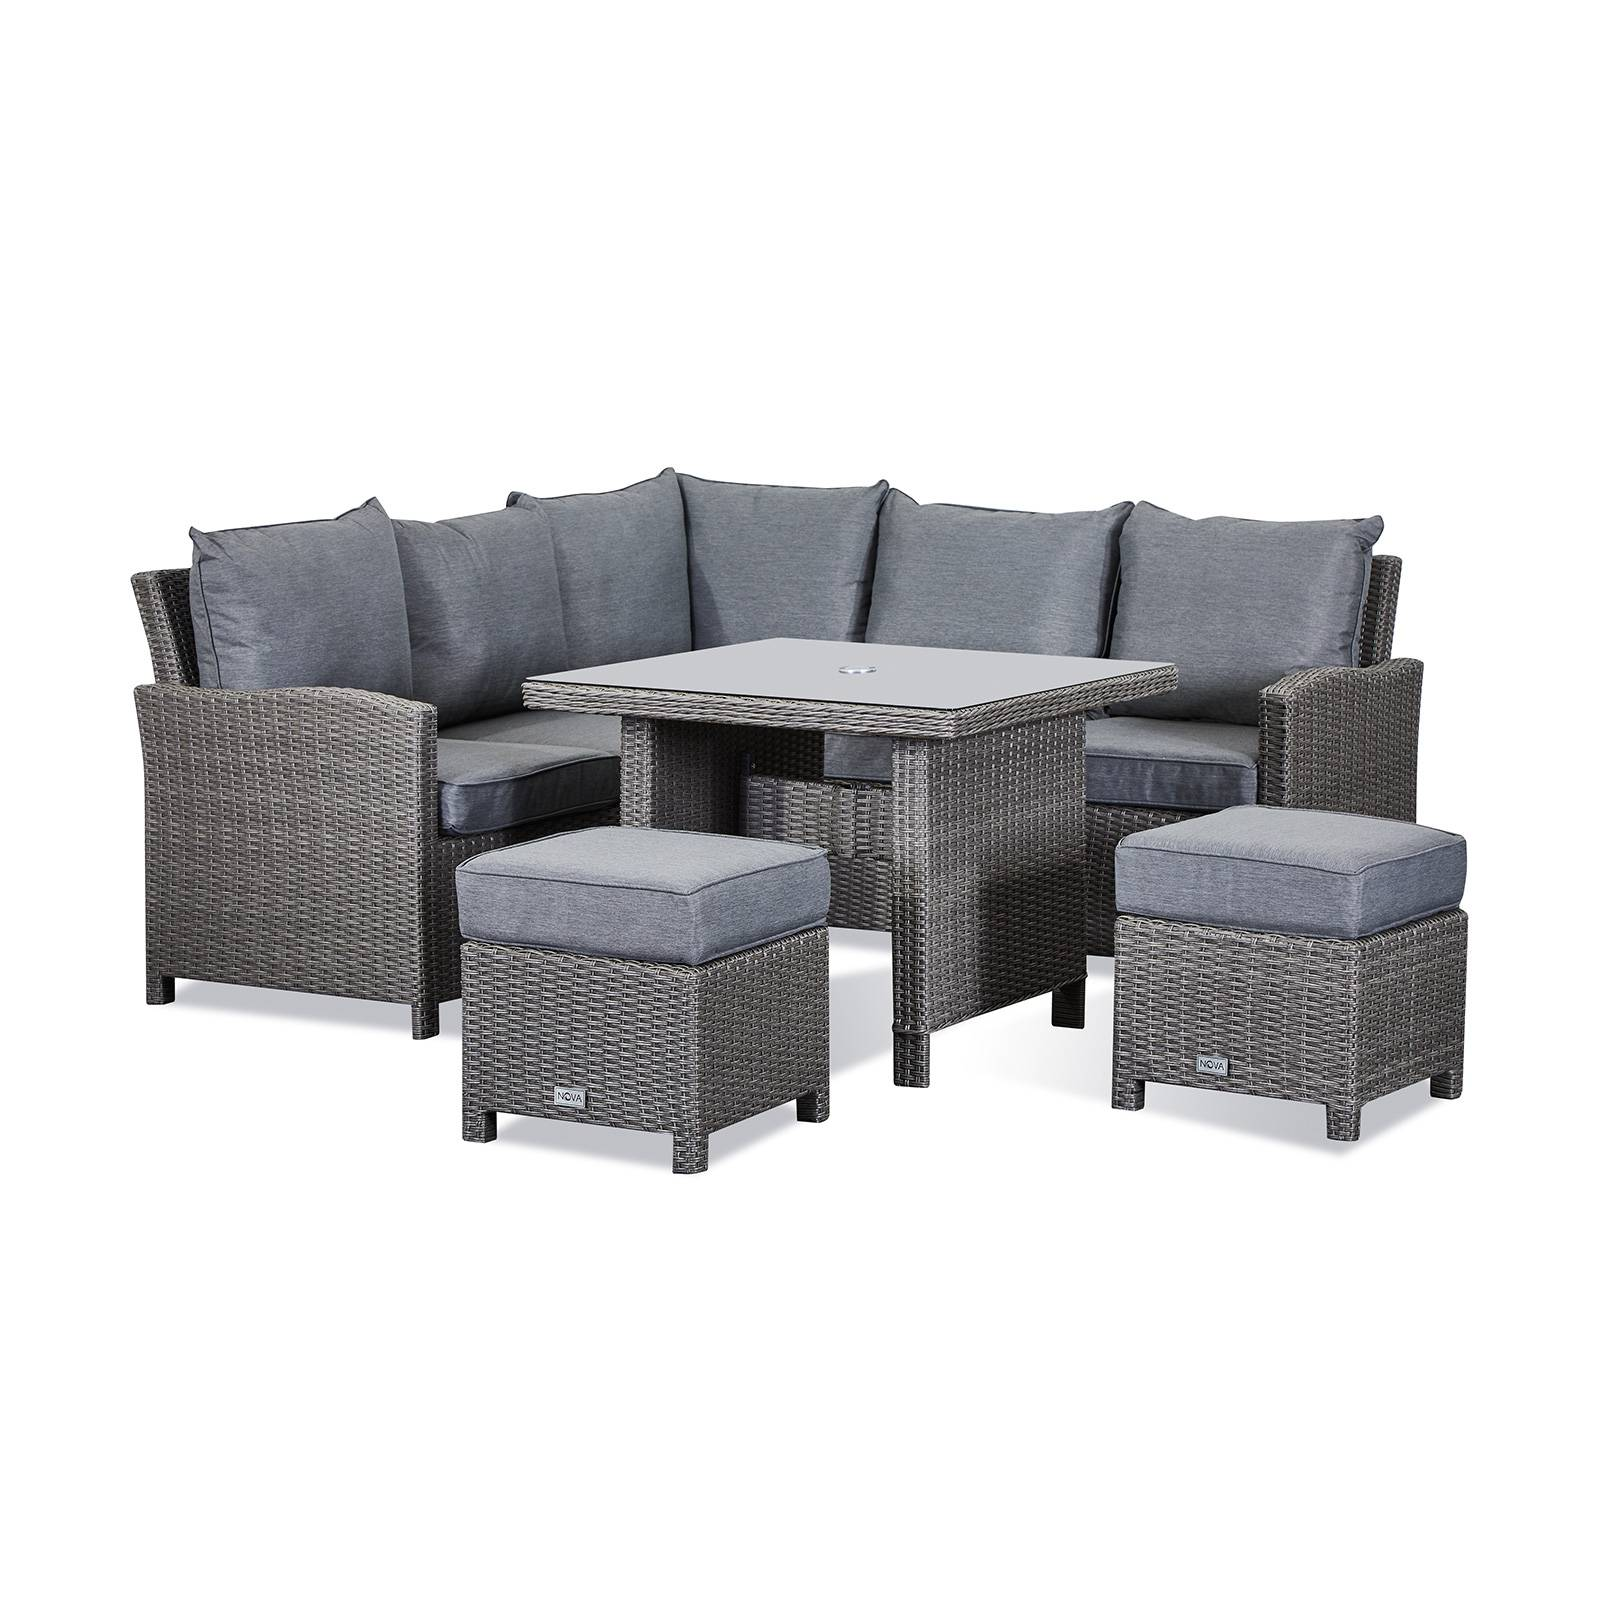 Oakworld Alfresco Heritage Ciara Compact Corner Dining Set with Casual Parasol Hole Table   Slate Grey